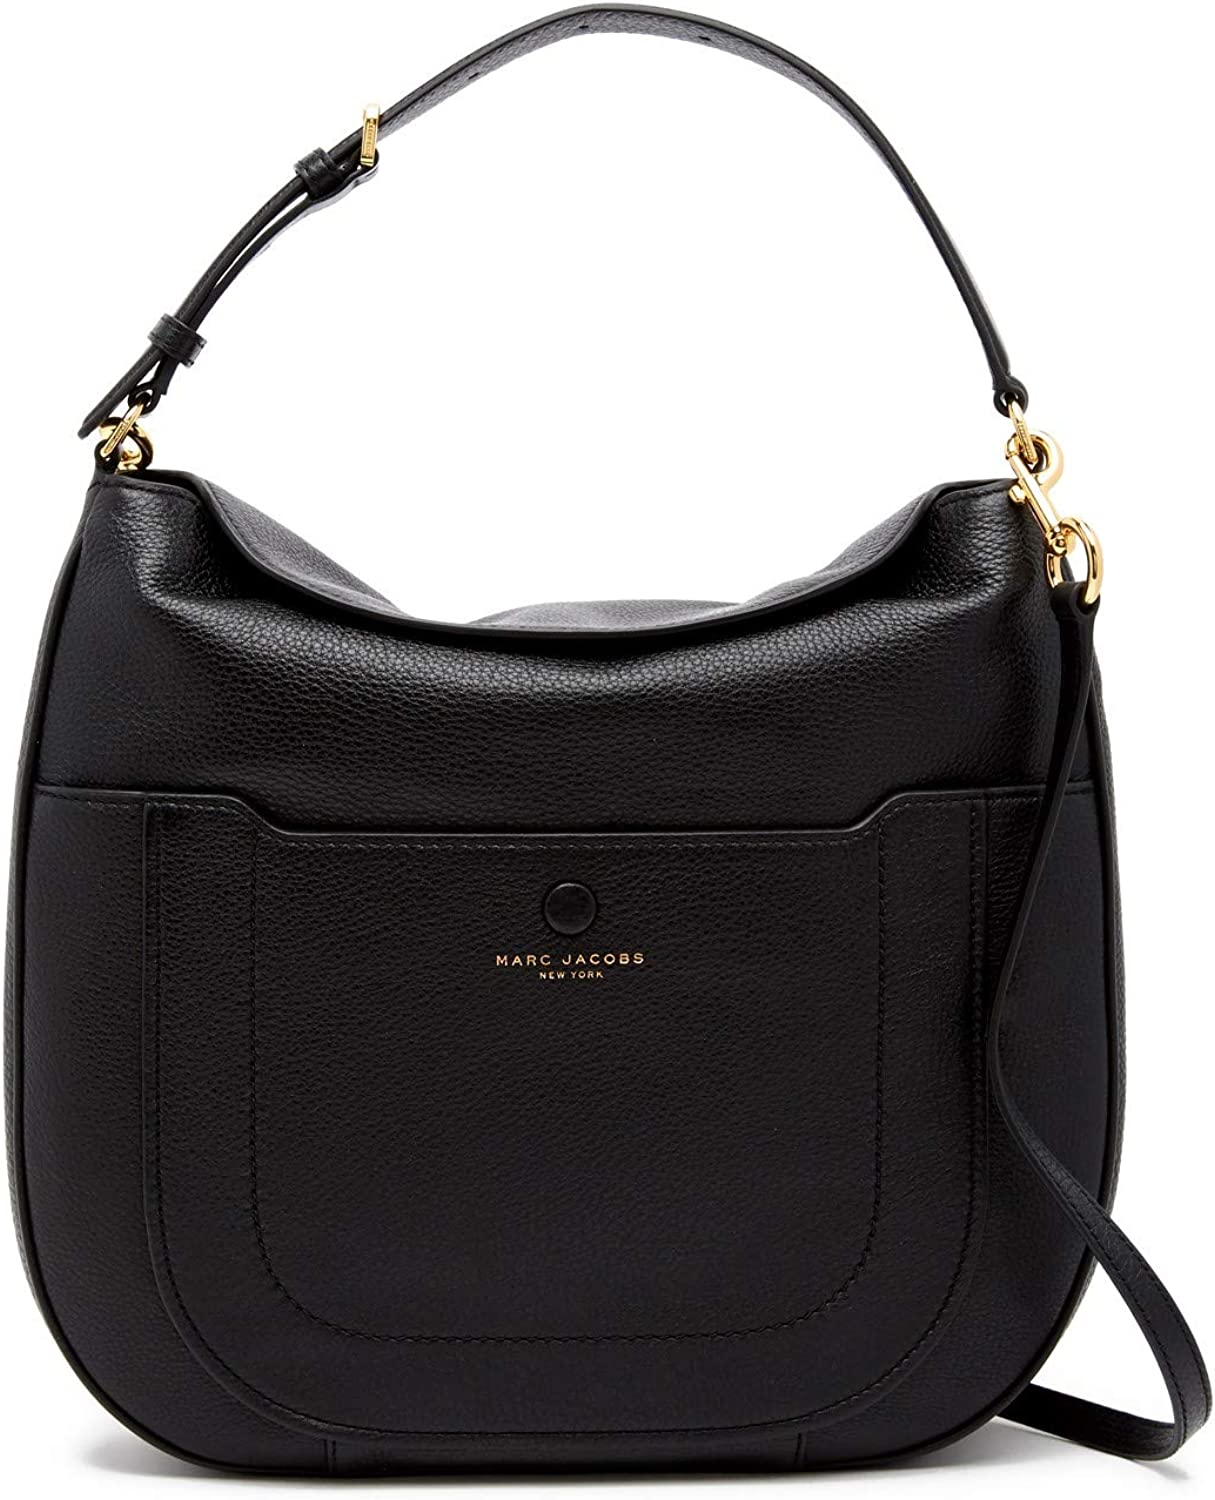 Marc Jacobs HOBO, Black